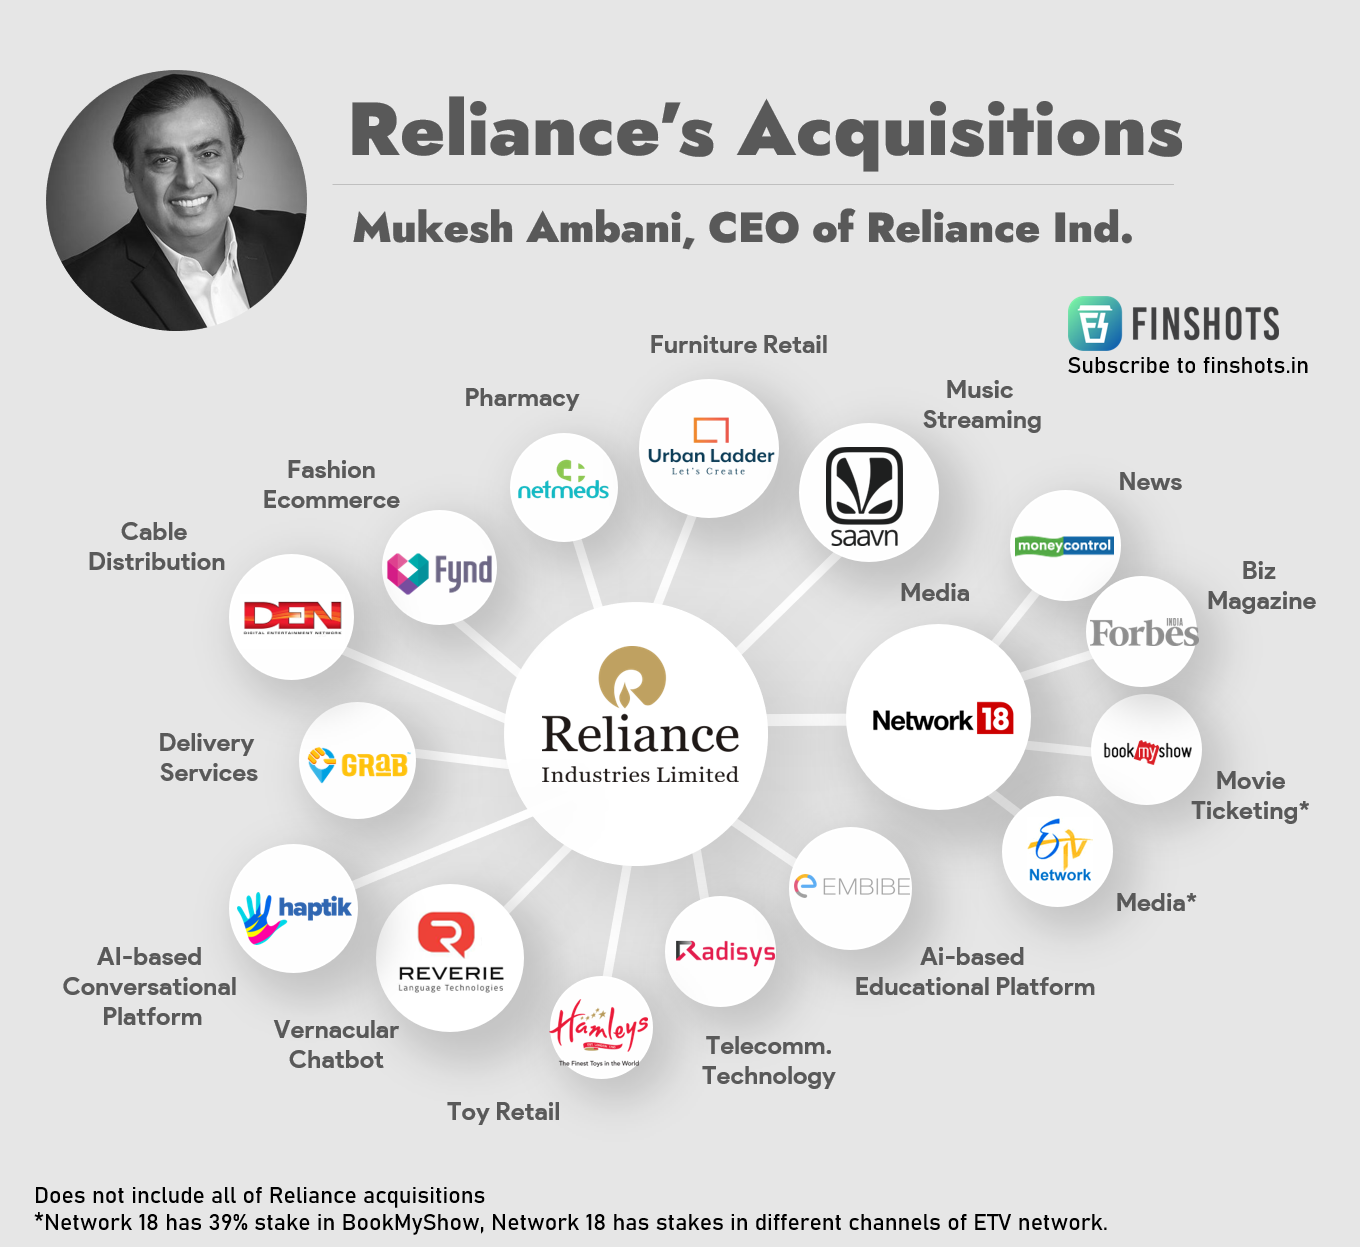 Reliance's Acquisitions